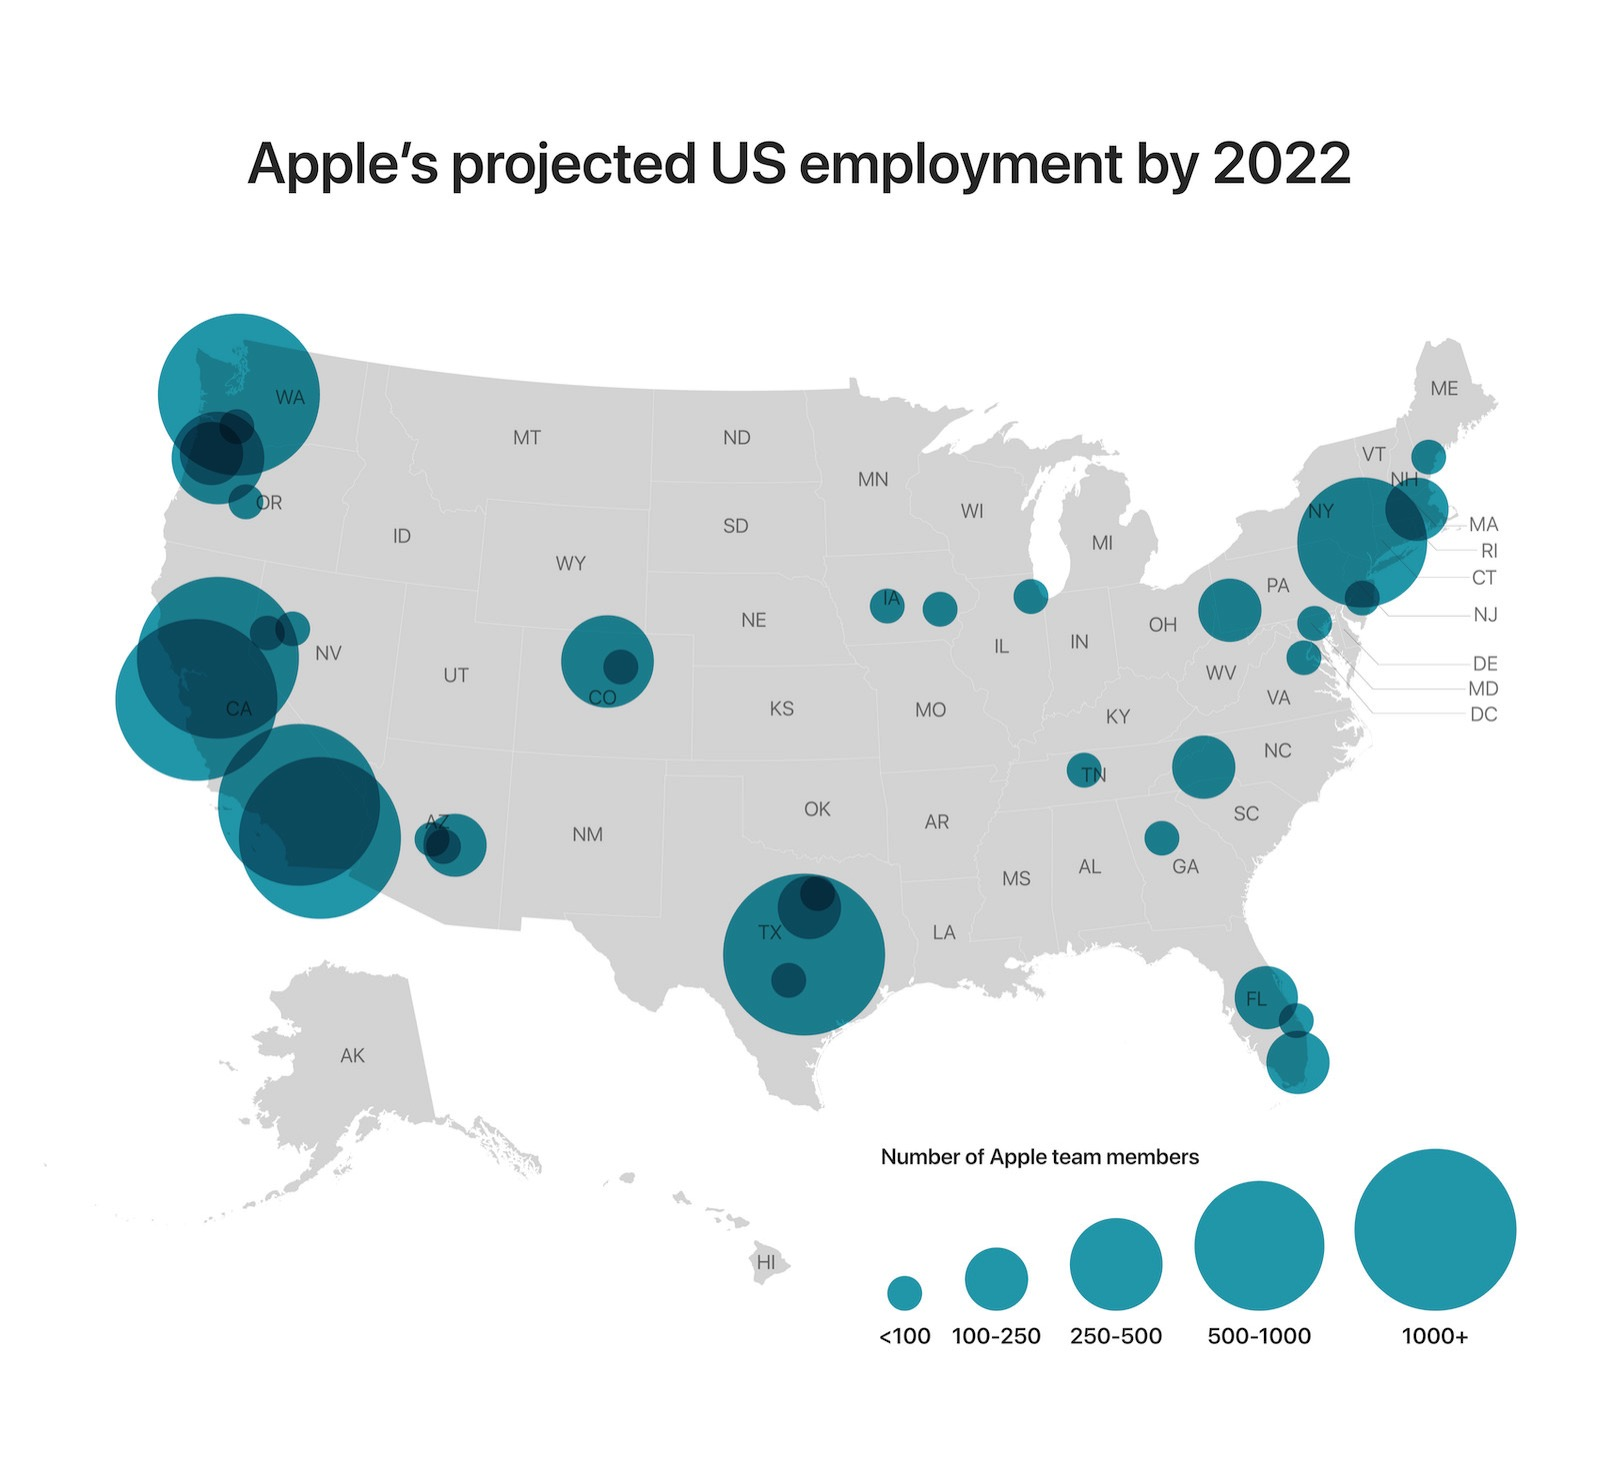 Apple-build-campus-in-Austin-and-in-US-projected-employment-12132018.jpg